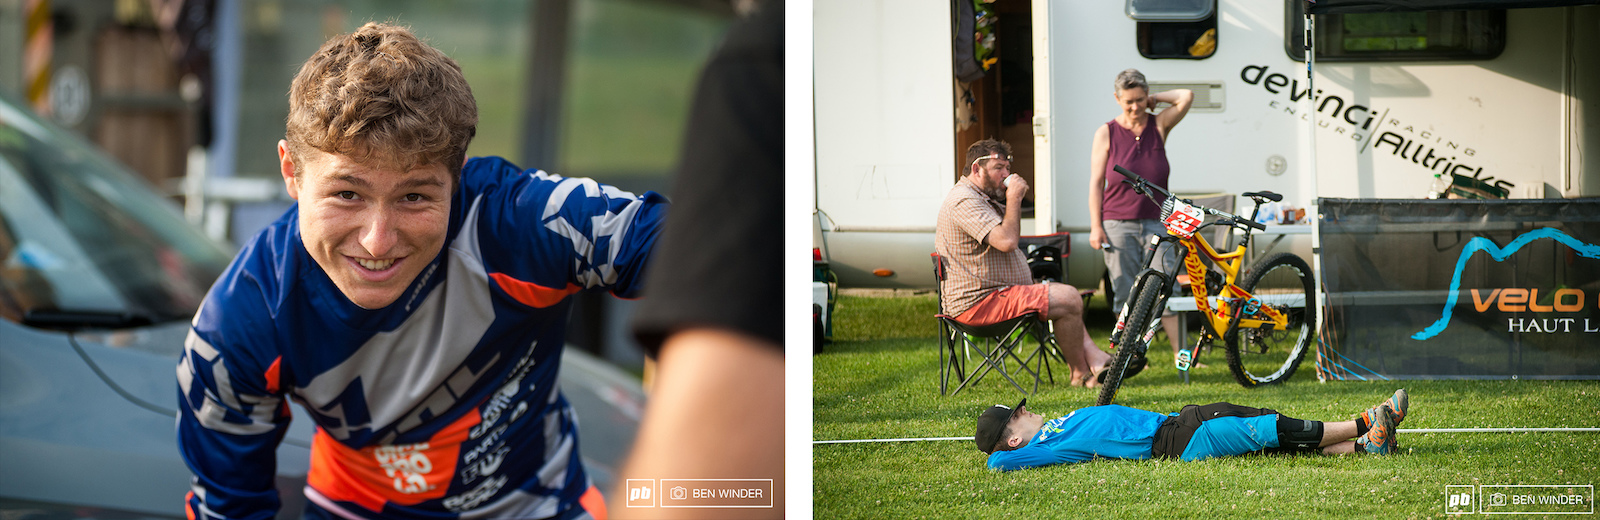 But back to this morning Elliot Baud left and on the right some rest before the big day.